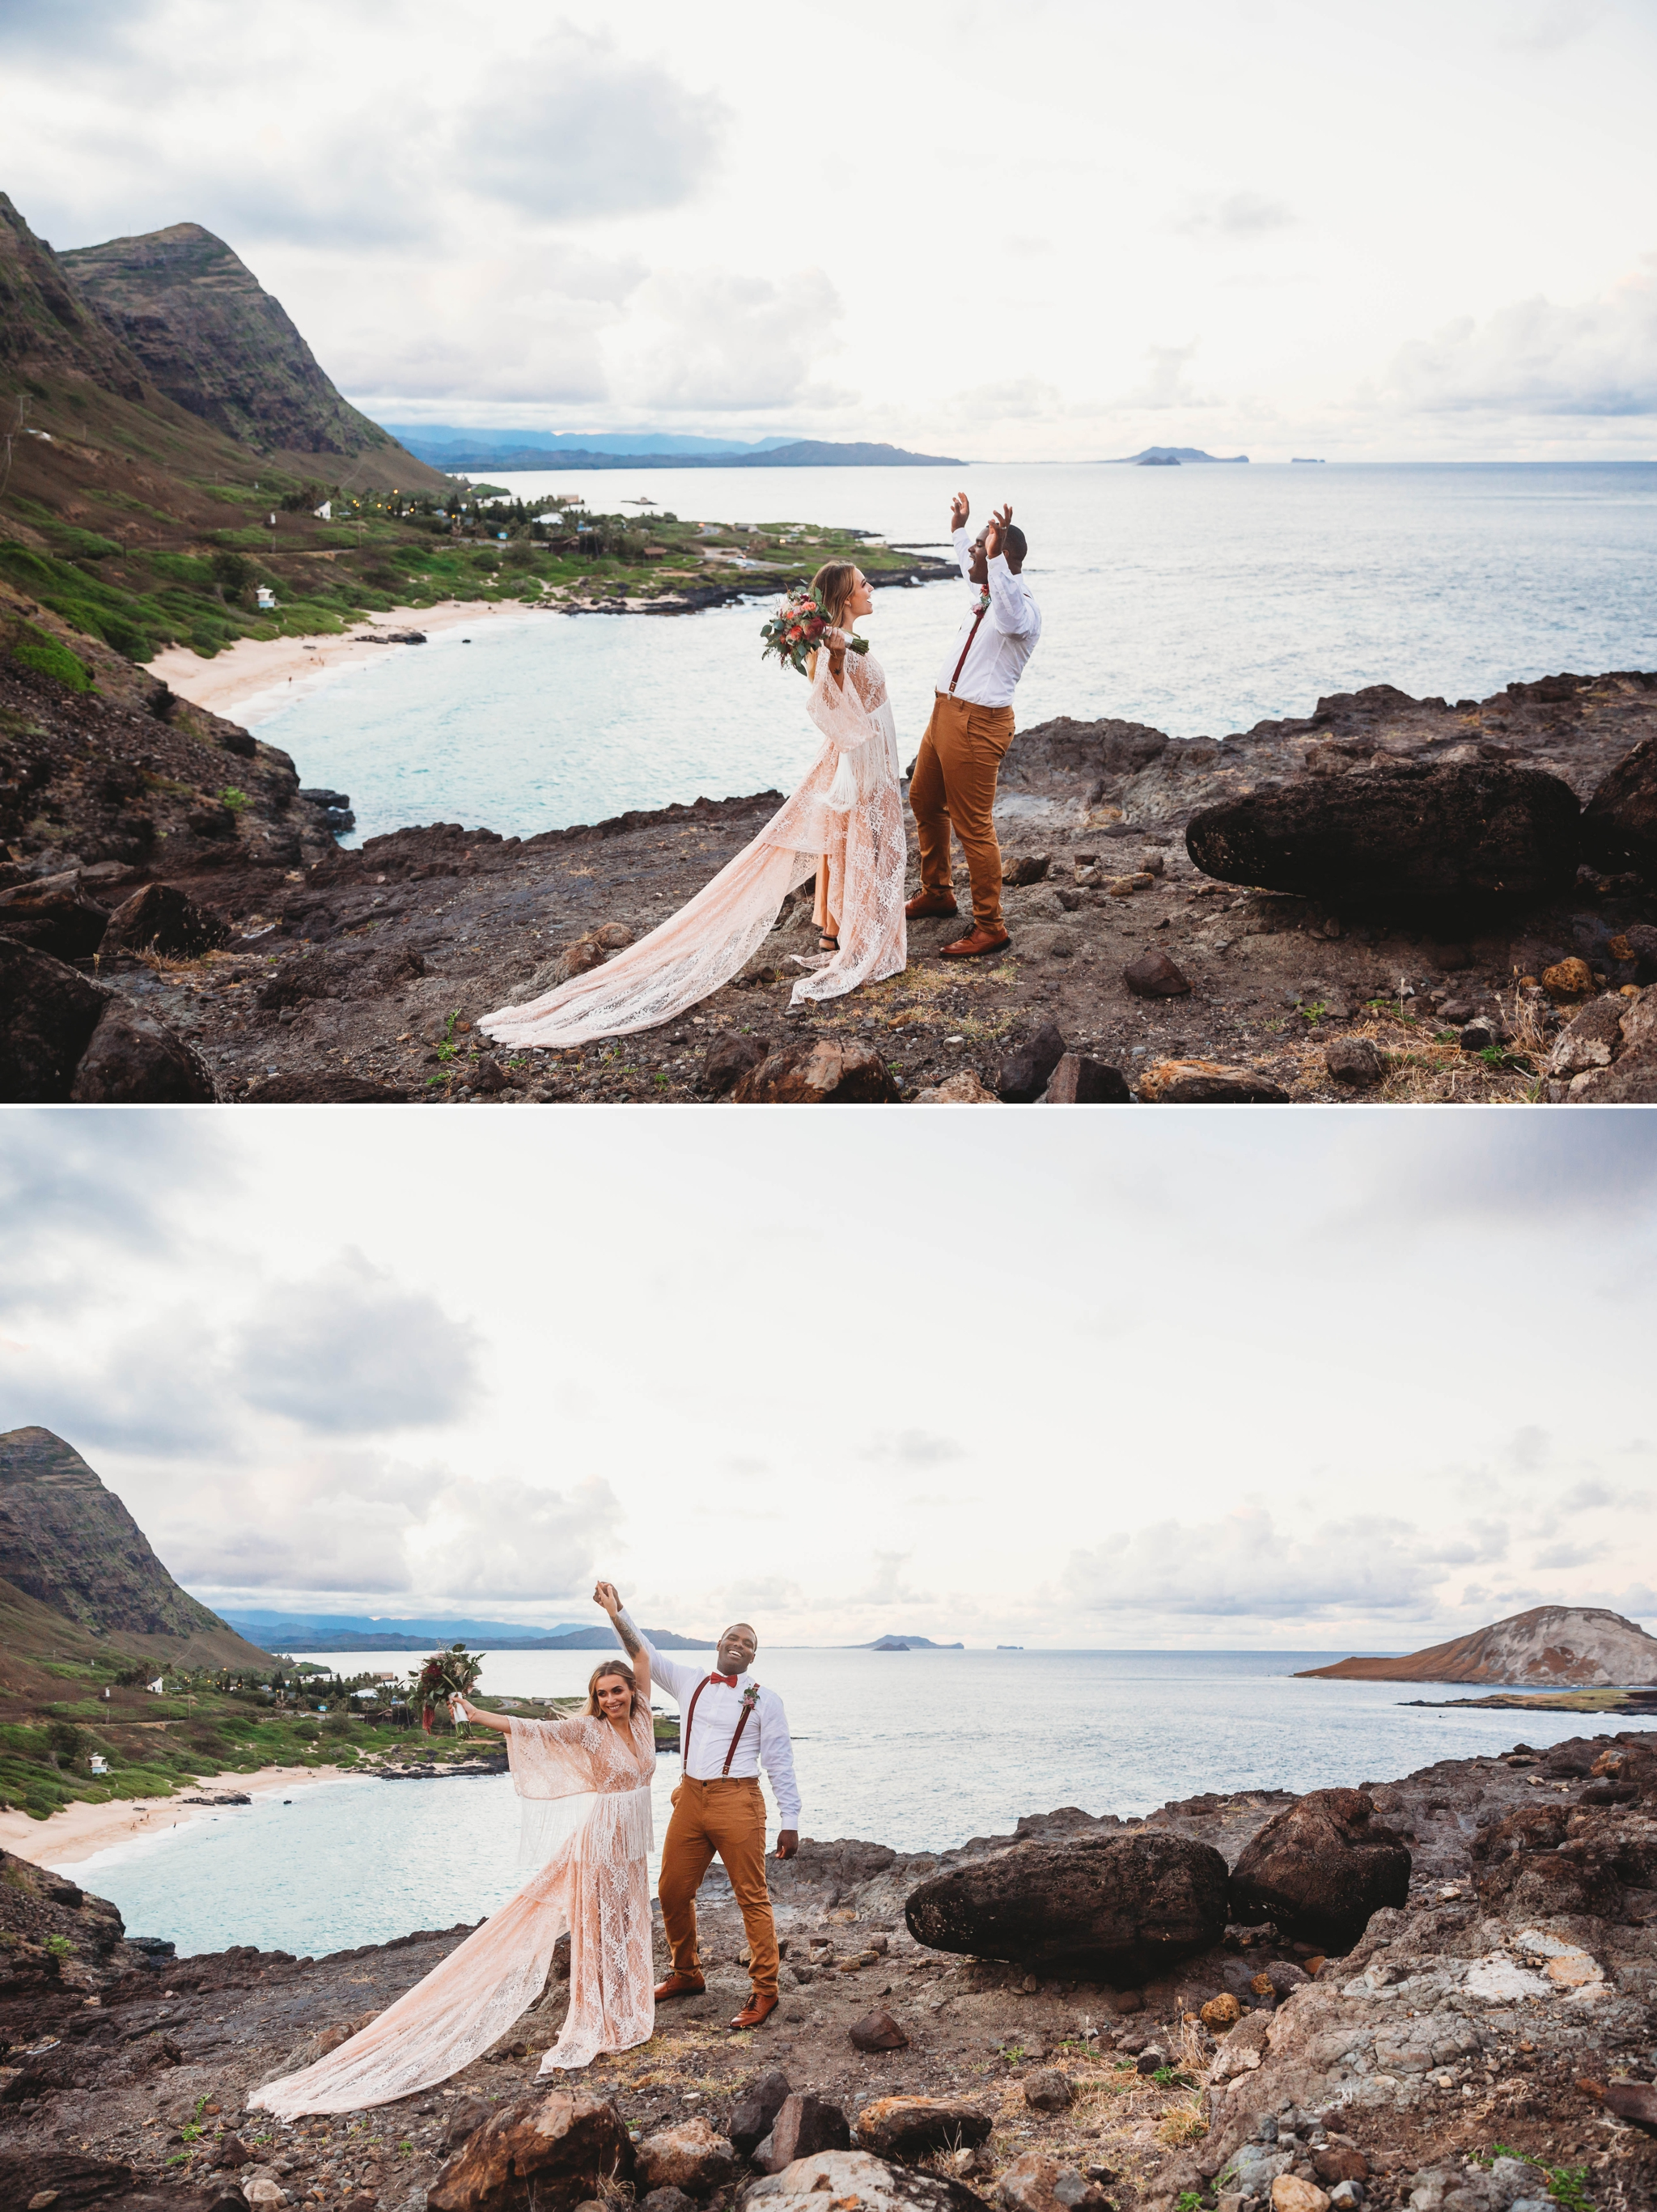 couple cheering after they got married - wedding ceremony at Makapuu Lookout overlooking the ocean and beach, Waimanalo, HI - Oahu Hawaii Engagement Photographer - Bride in a flowy fringe boho wedding dress - lanikai lookout - deutsche hochzeits fotografin in hawaii - smal1 - dark and moody - true to live